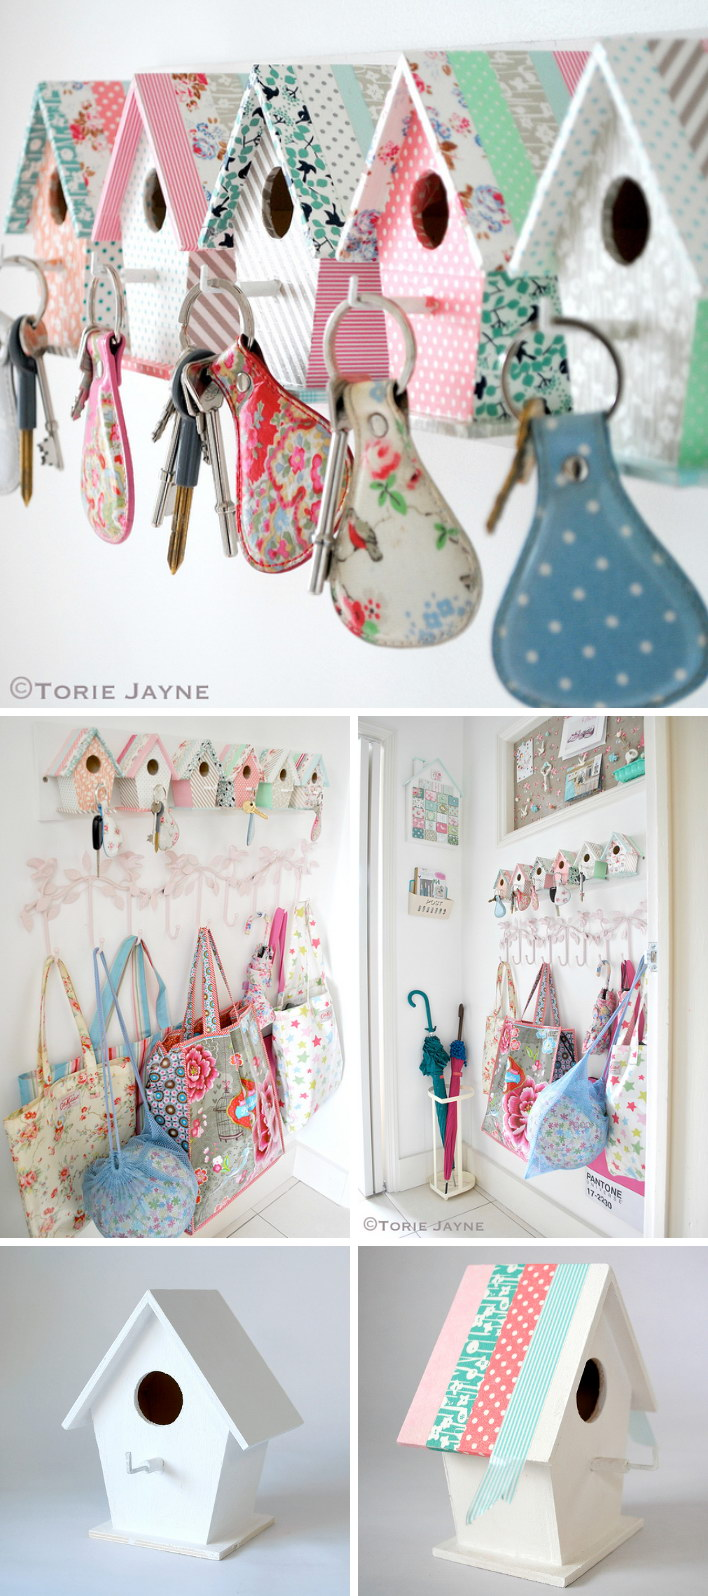 Easy diy projects for teenage girls rooms - Bedroom Decor Diy Projects Bedroom Design Ideas